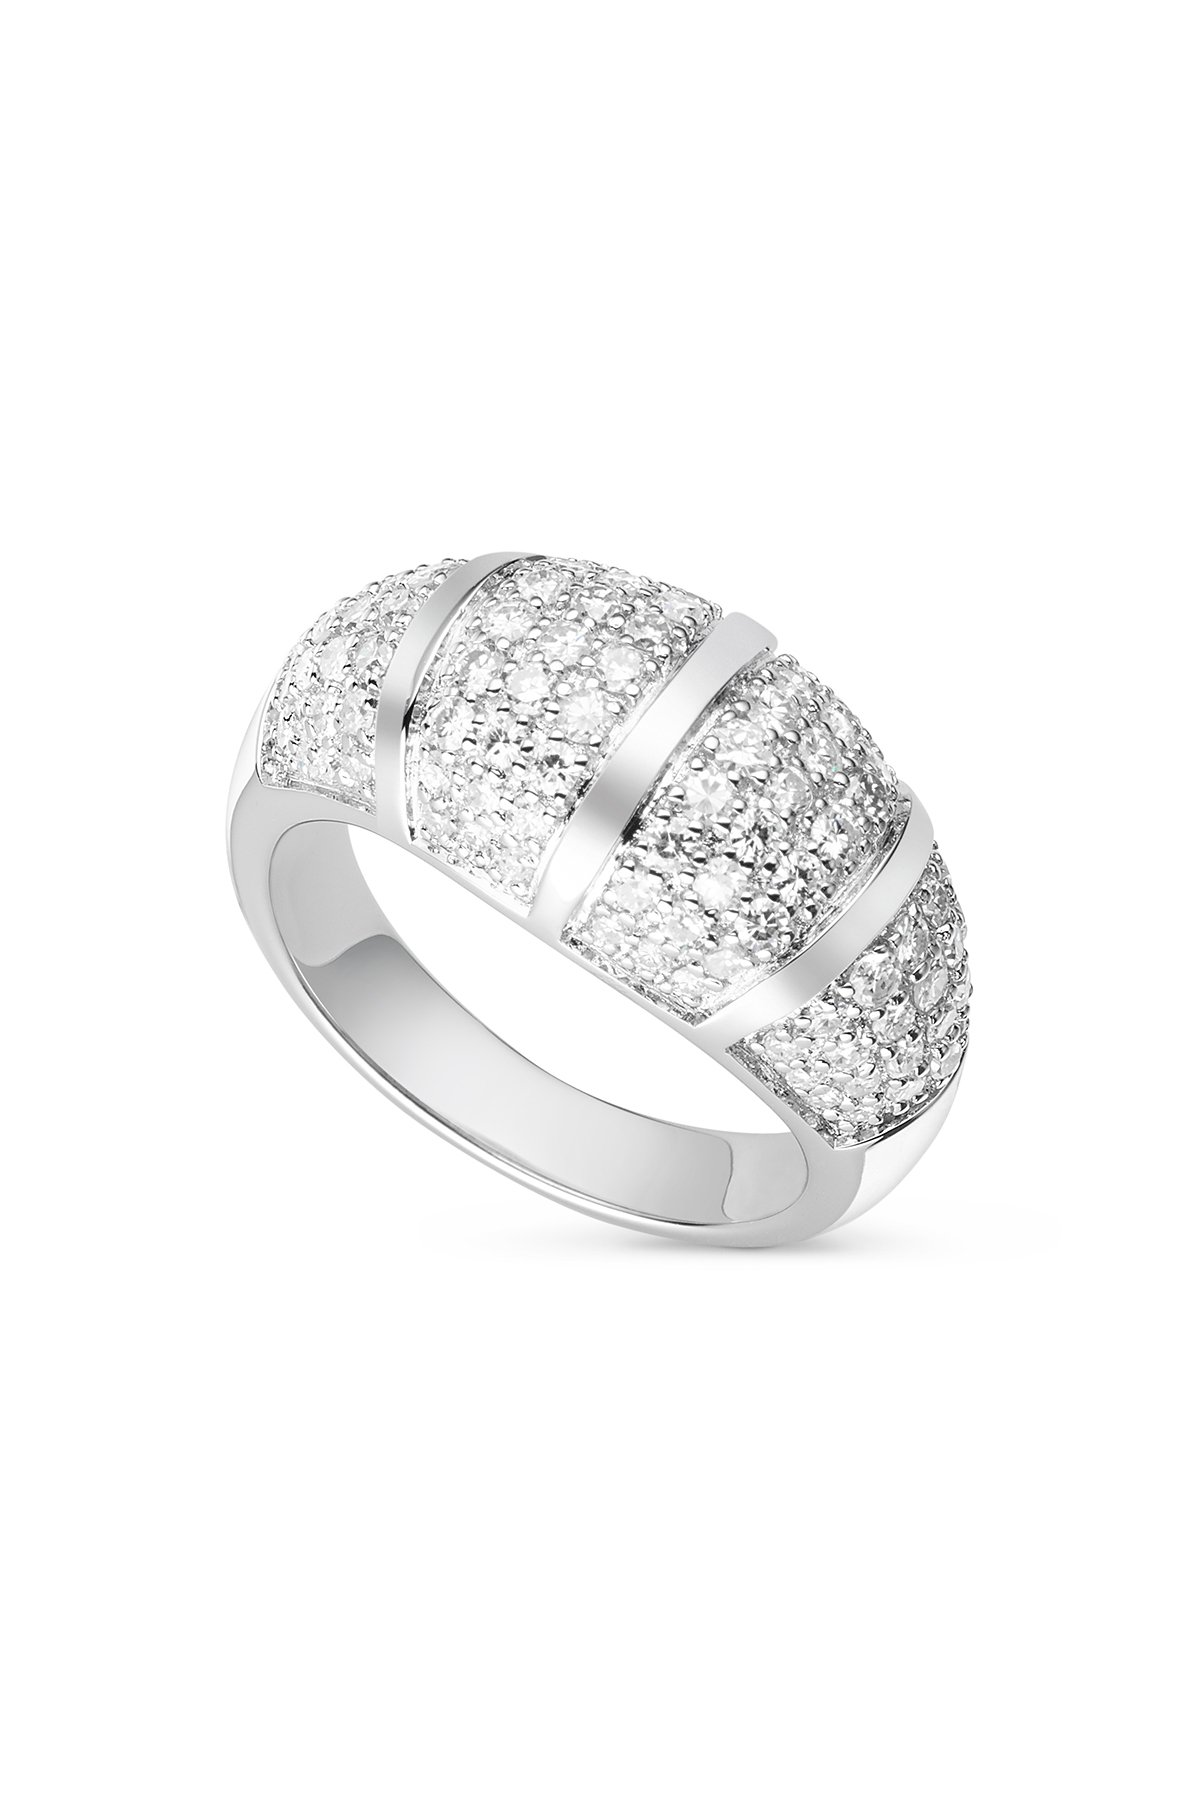 Dome Shaped Pave 1.5mm Moissanite Ring - size 8, 1.14cttw DEW By Charles & Colvard